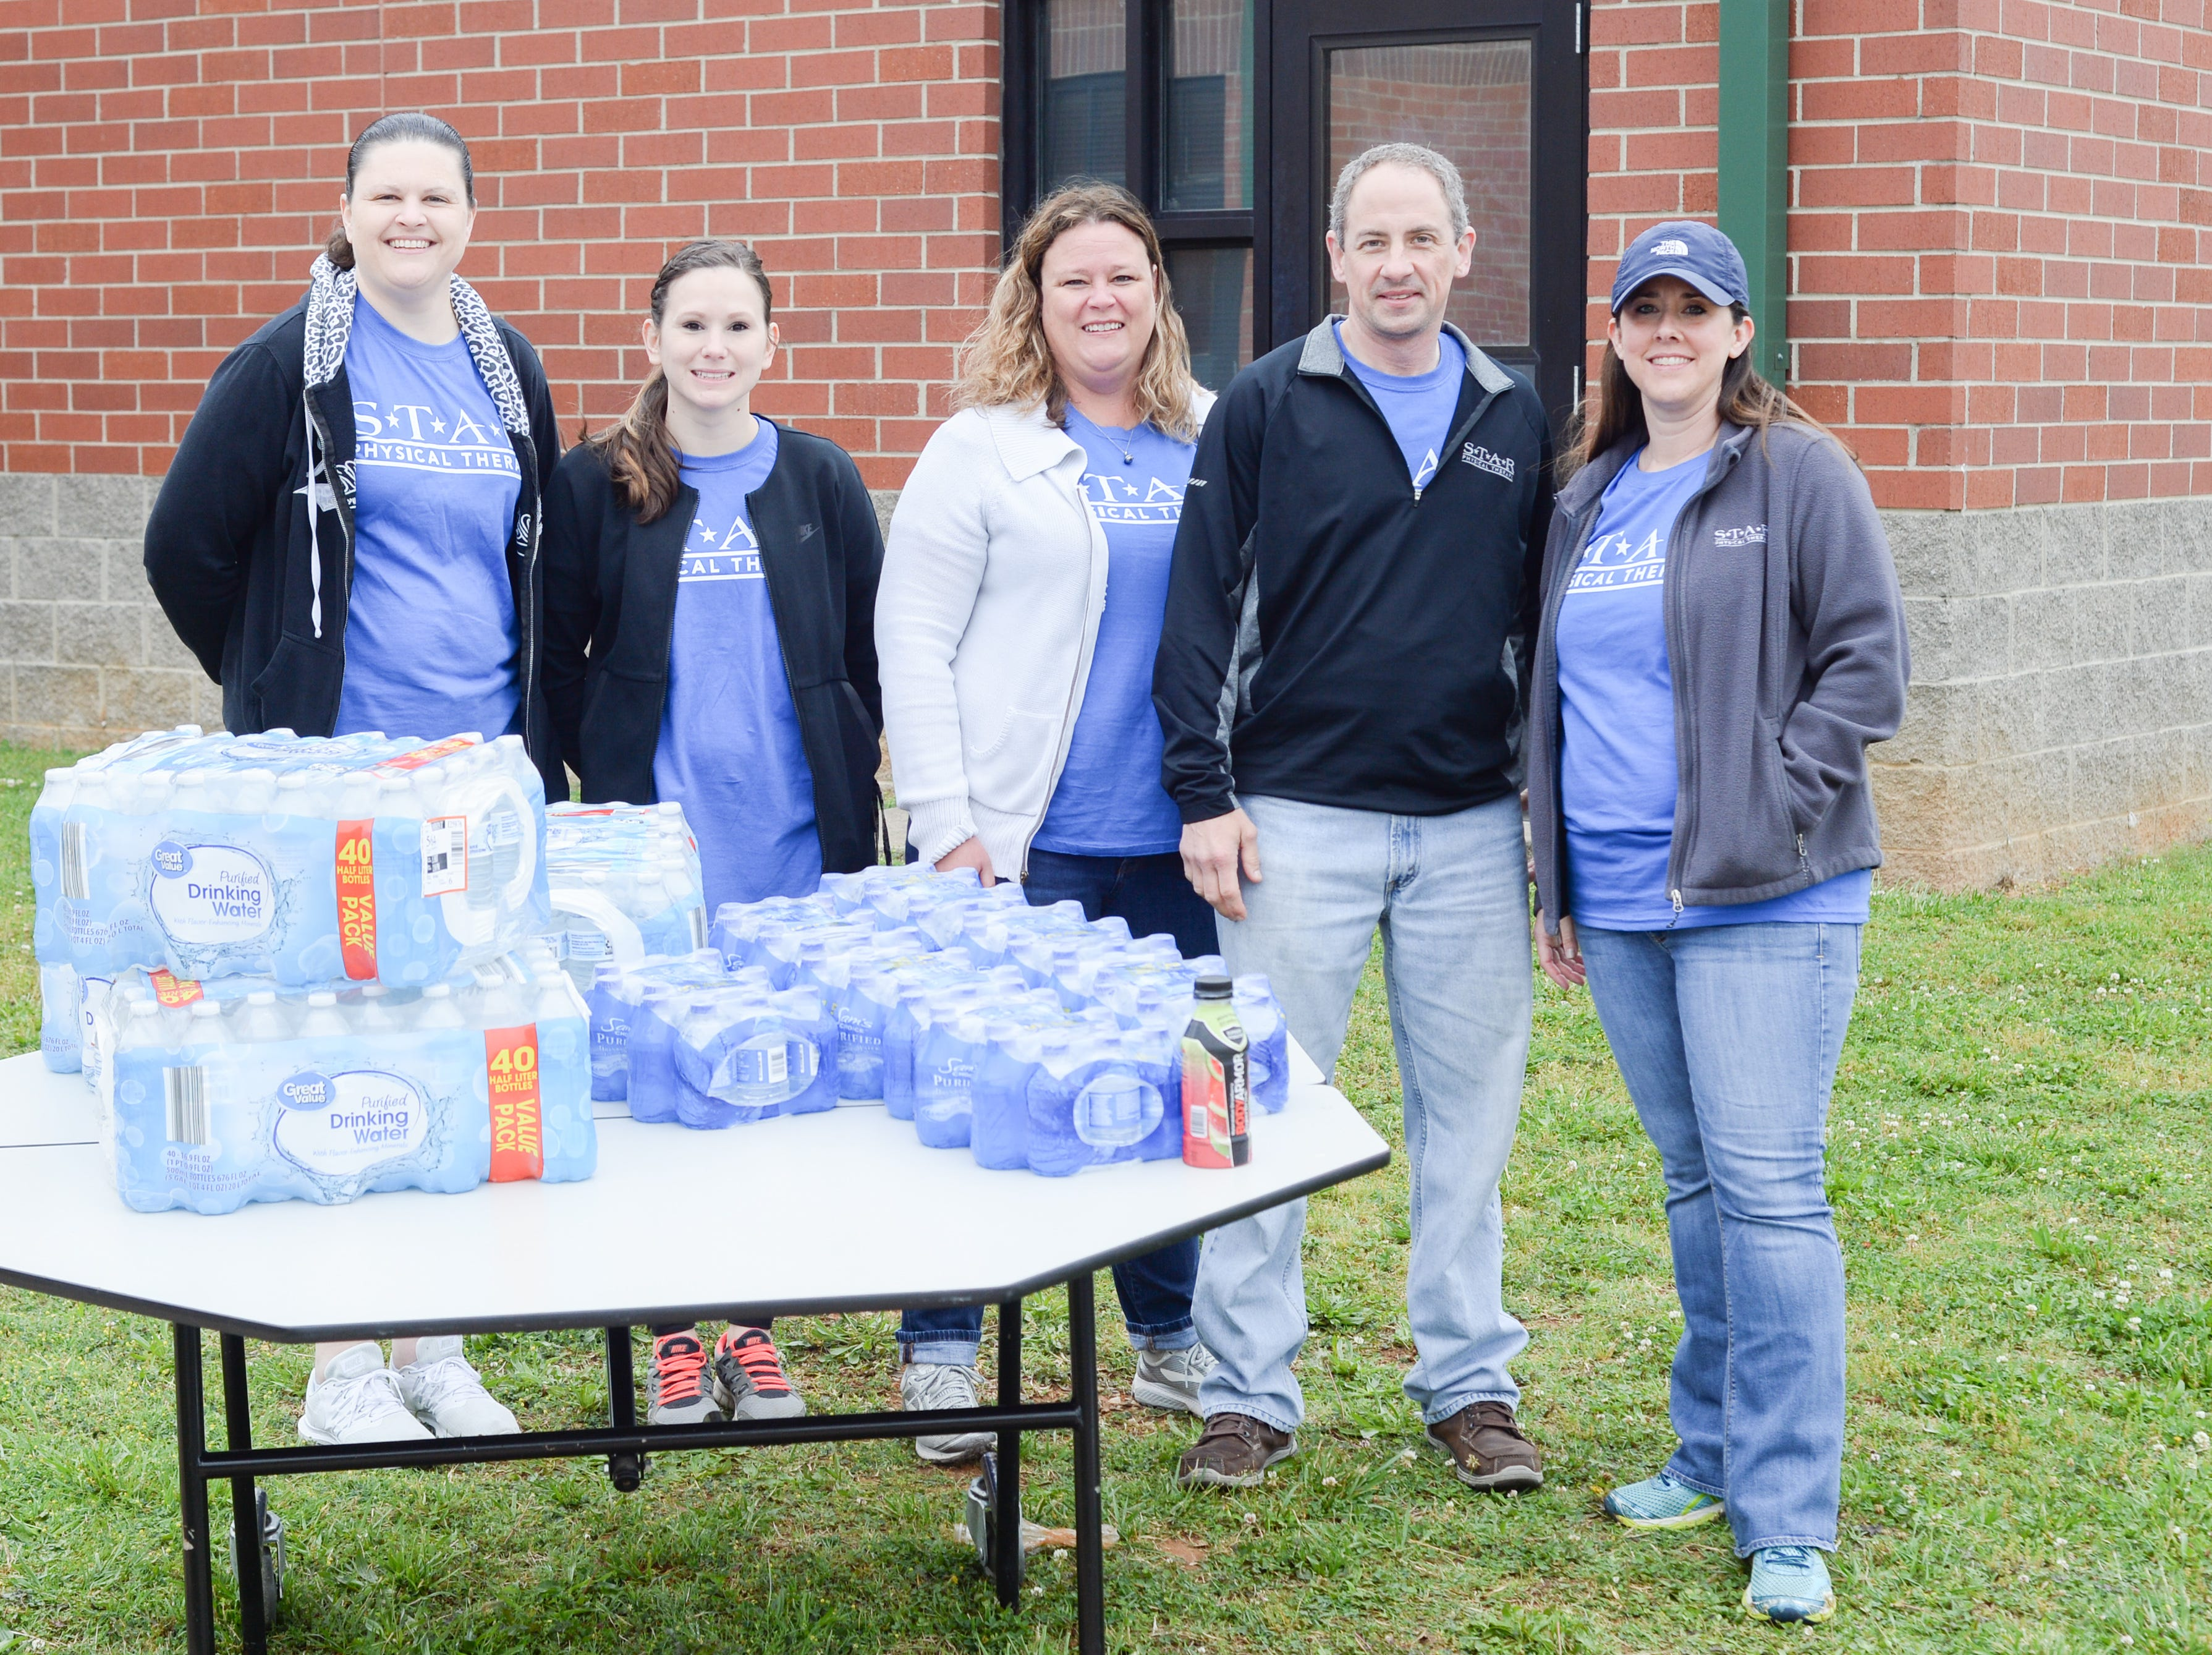 STAR Physical Therapy came out to support the Strawberry Stride at Portland High School during the 78th Annual Middle Tennessee Strawberry Festival presented by the Portland Chamber of Commerce in Portland on Saturday, May 11.